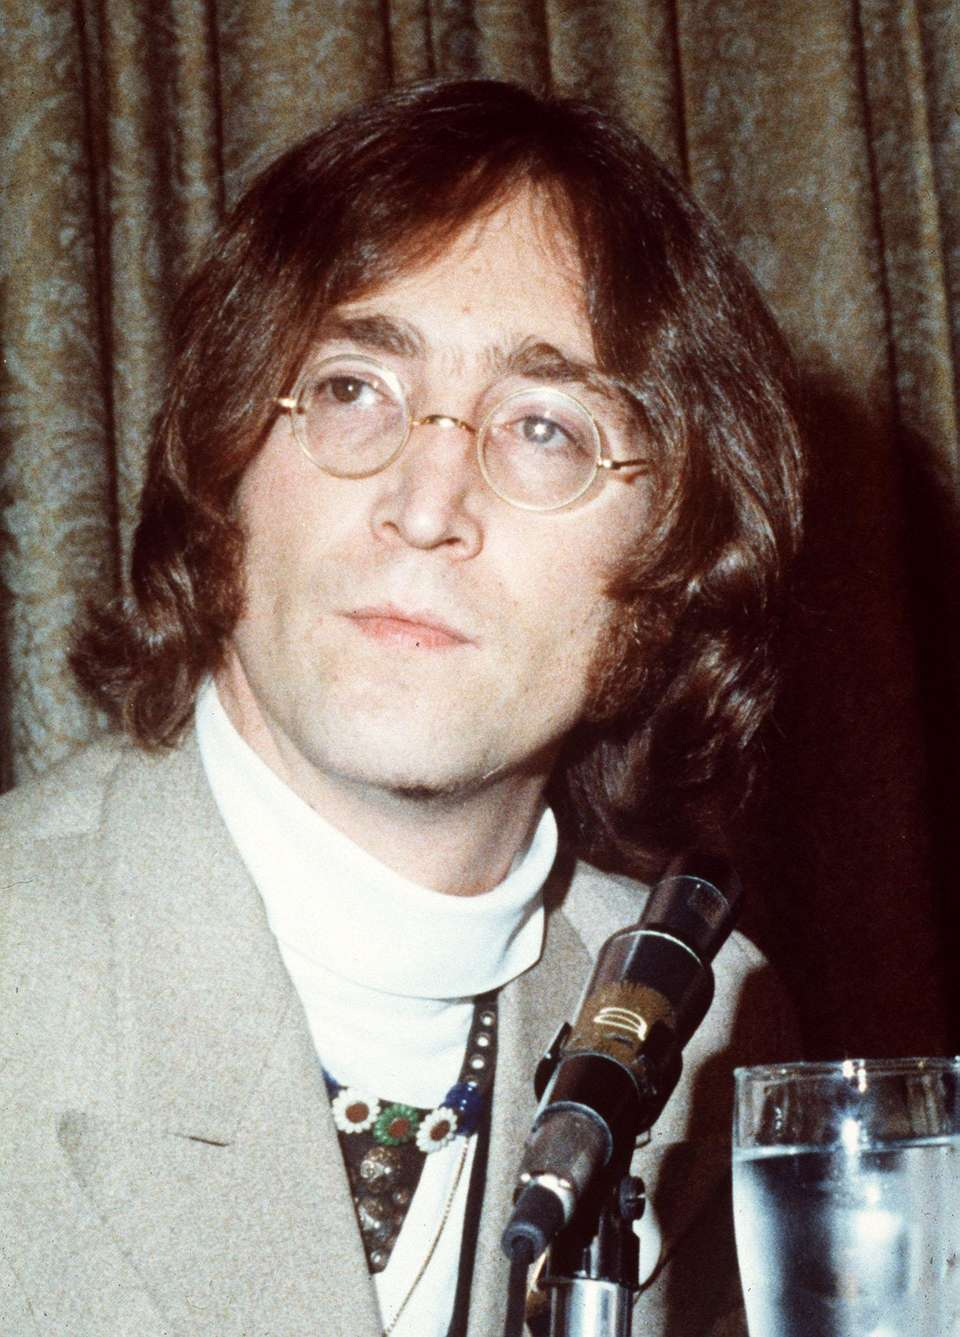 John Lennon, the founding member of The Beatles,